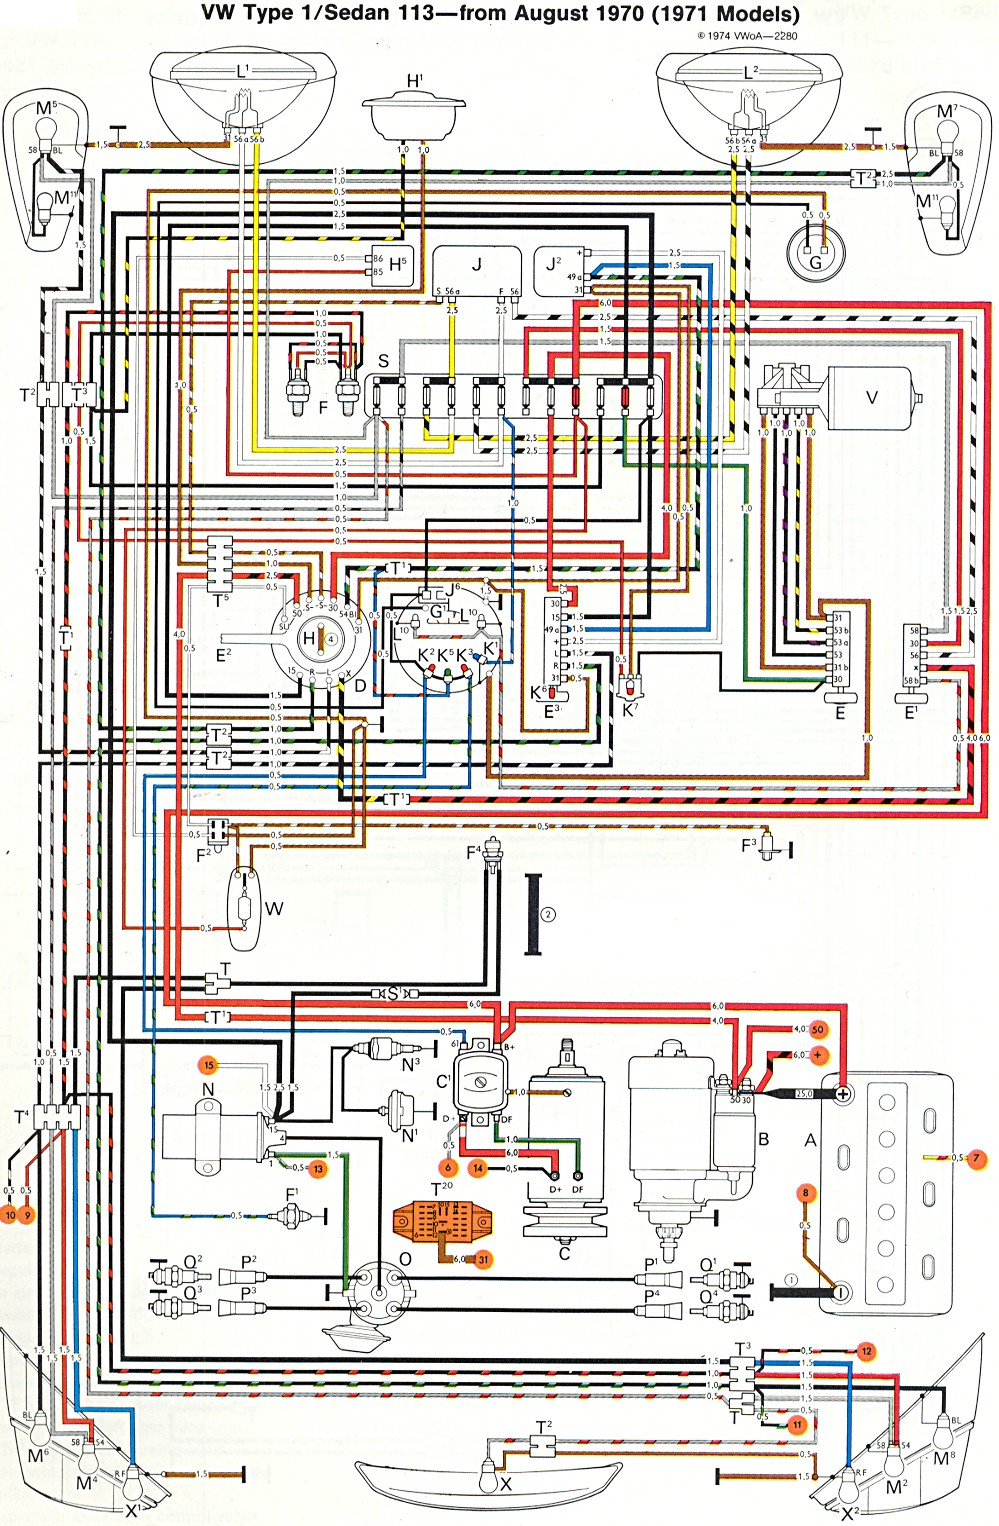 hight resolution of 2009 vw cc sport fuse diagram wiring library1971 volkswagen wiring diagram simple wiring diagram 2007 vw